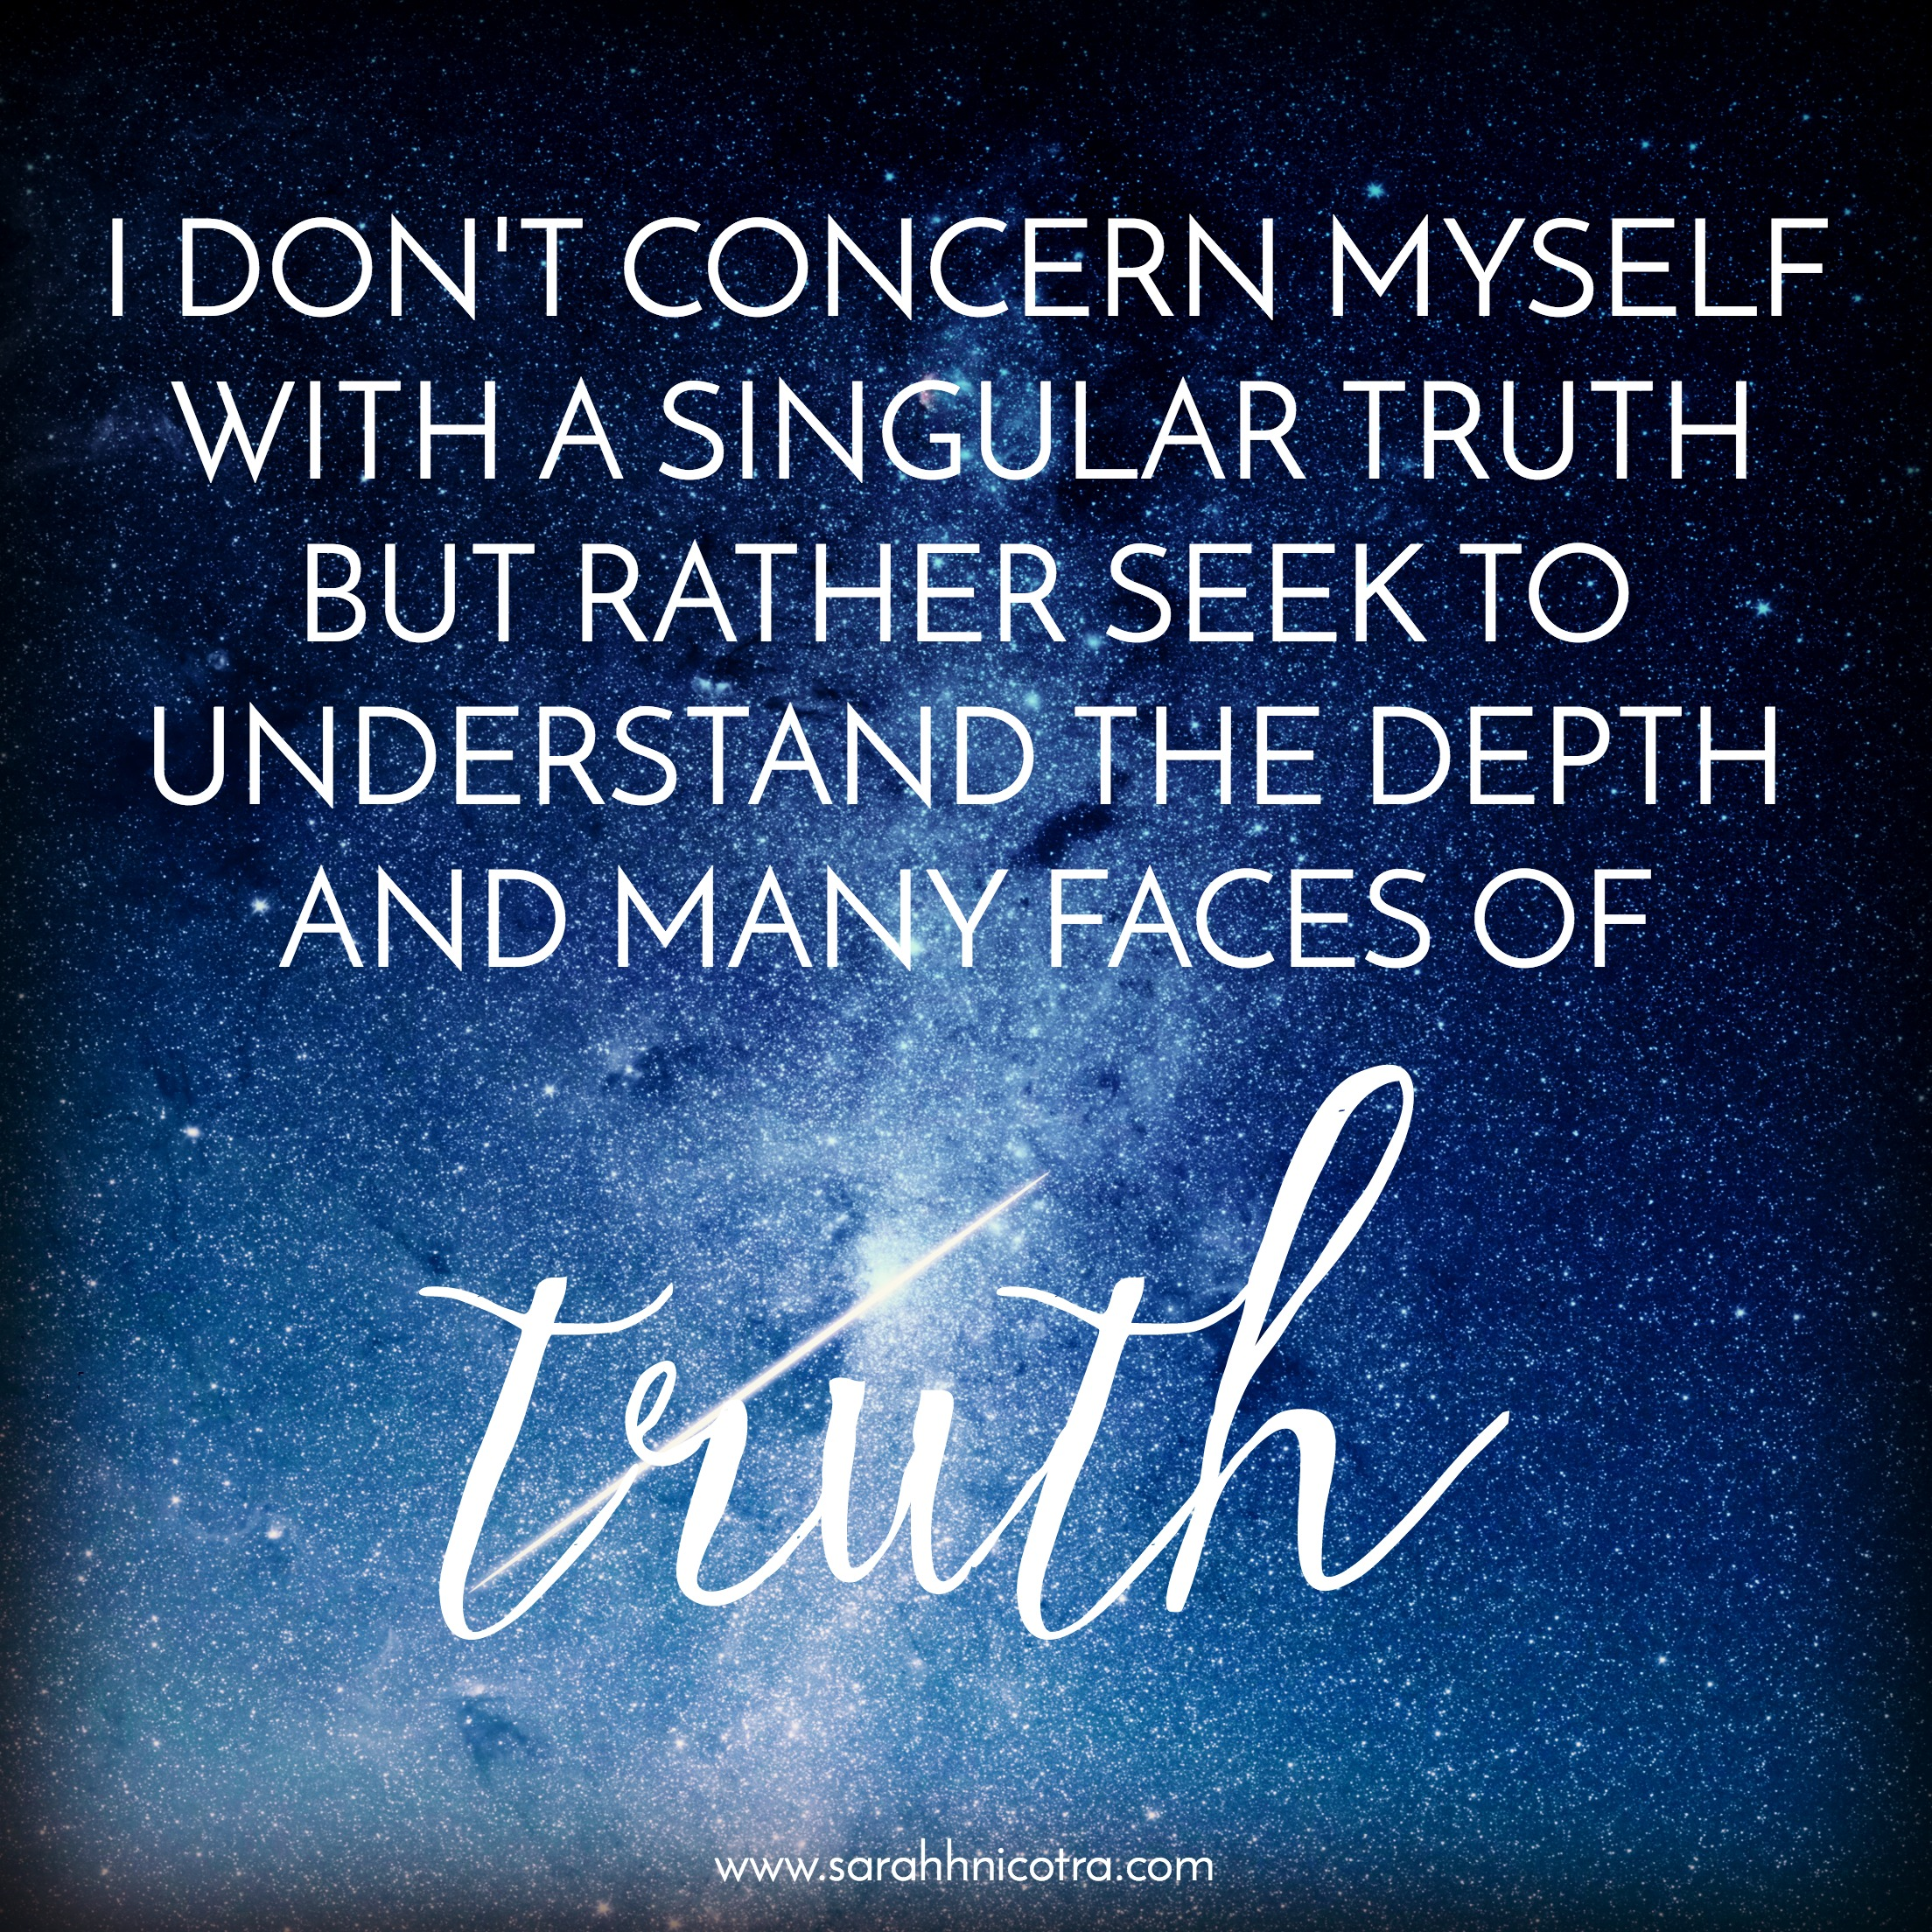 """""""I don't concern myself with a singular truth but rather seek to understand the depth and many faces of truth"""" Sarah Nicotra"""